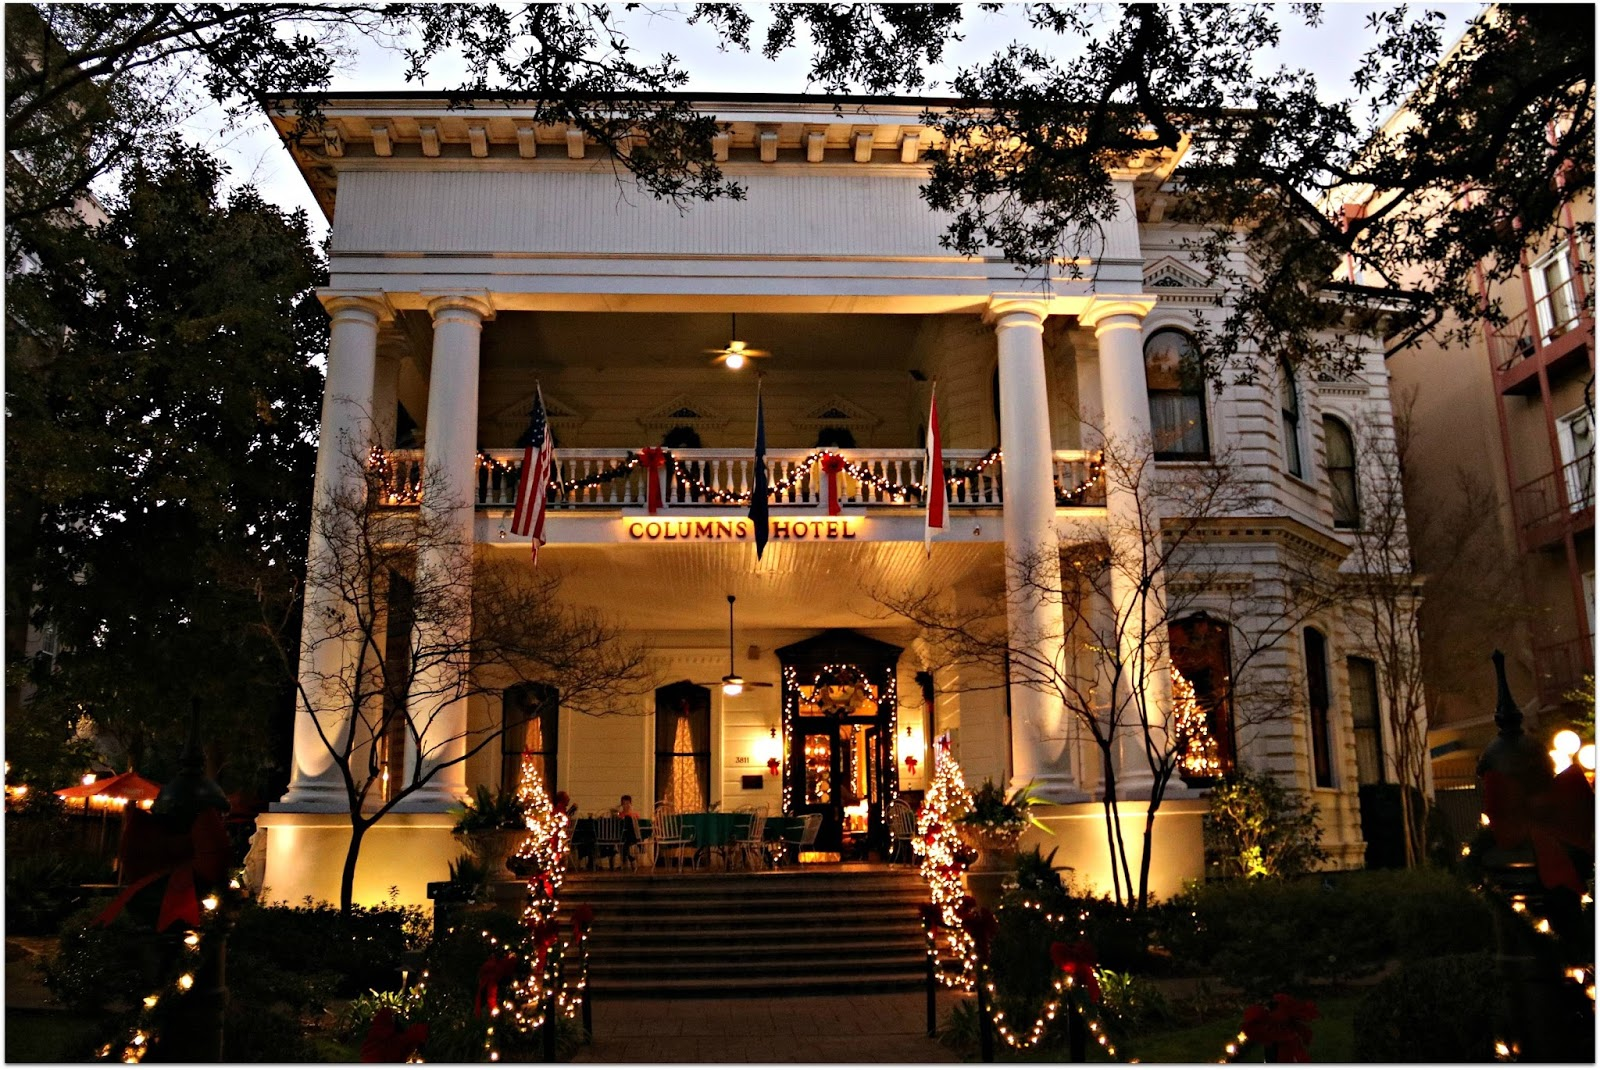 Haunted Nation: Columns Hotel - New Orleans, LA (Haunted Home or ...